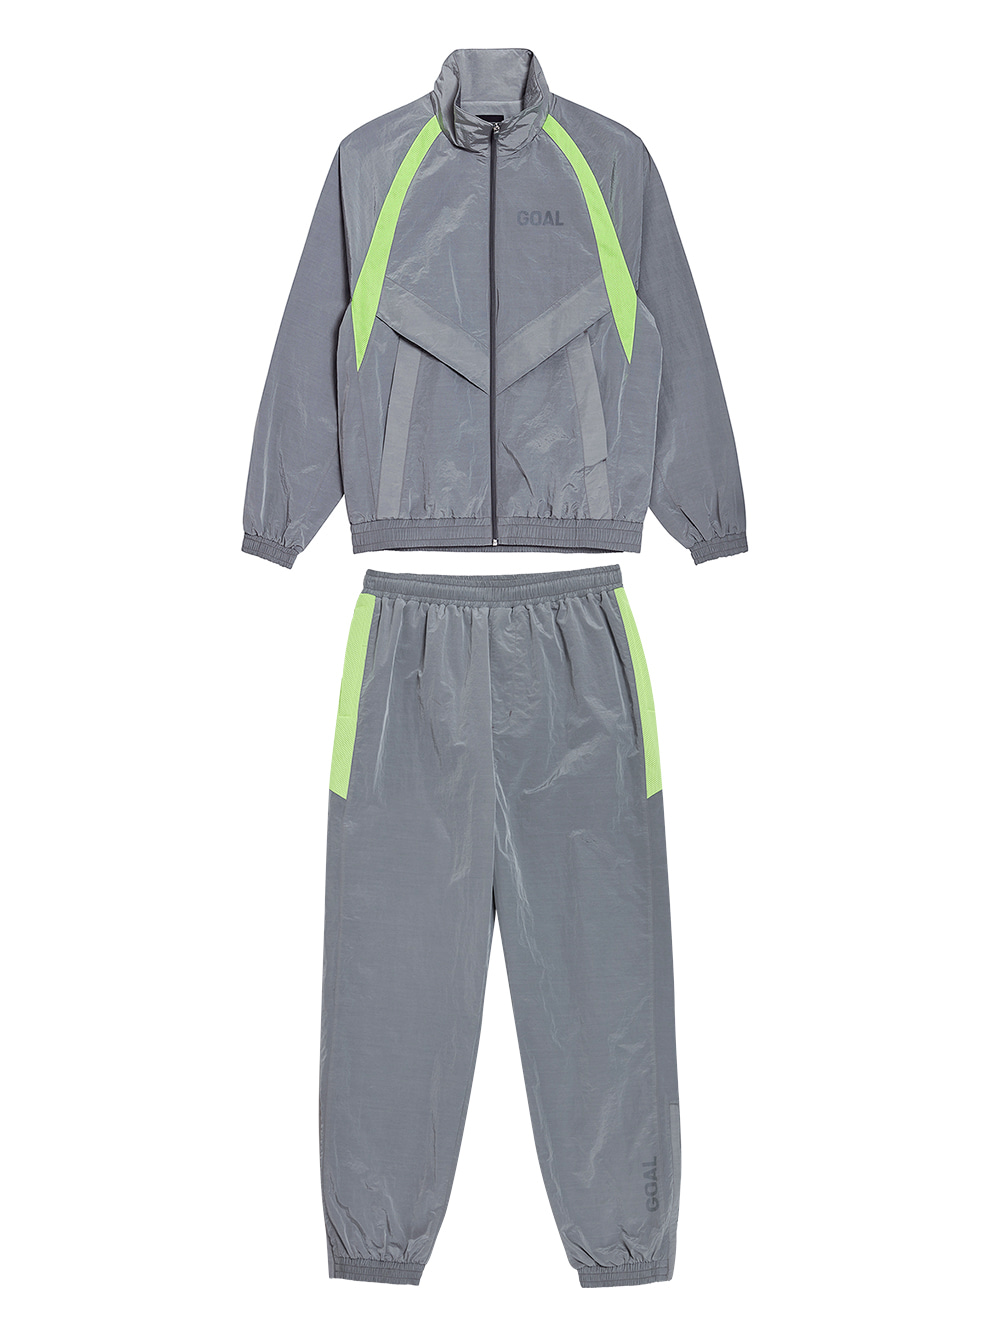 [10% OFF] WARMUP JACKET & PANTS SET - GREY